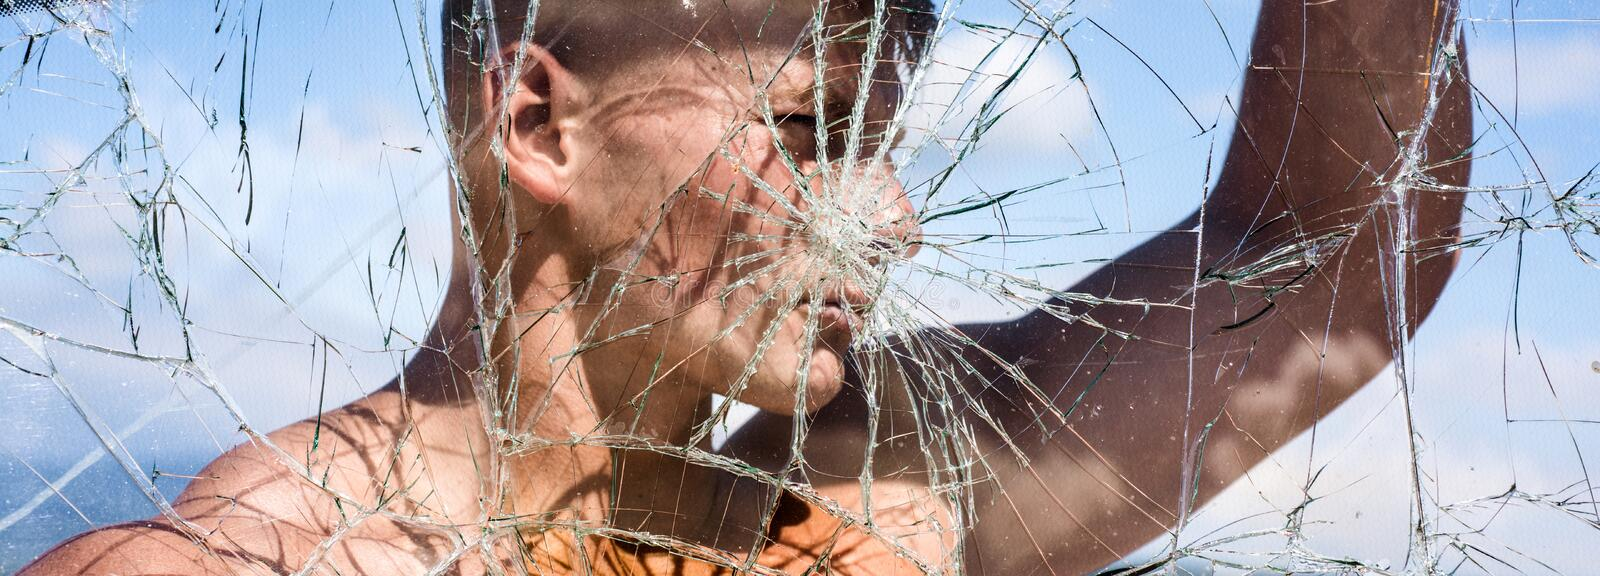 His ambition knows no bounds. Strong man seen through cracked glass. Sport man with muscular strength. Sport club. Achieving sport ambition with right workout stock images